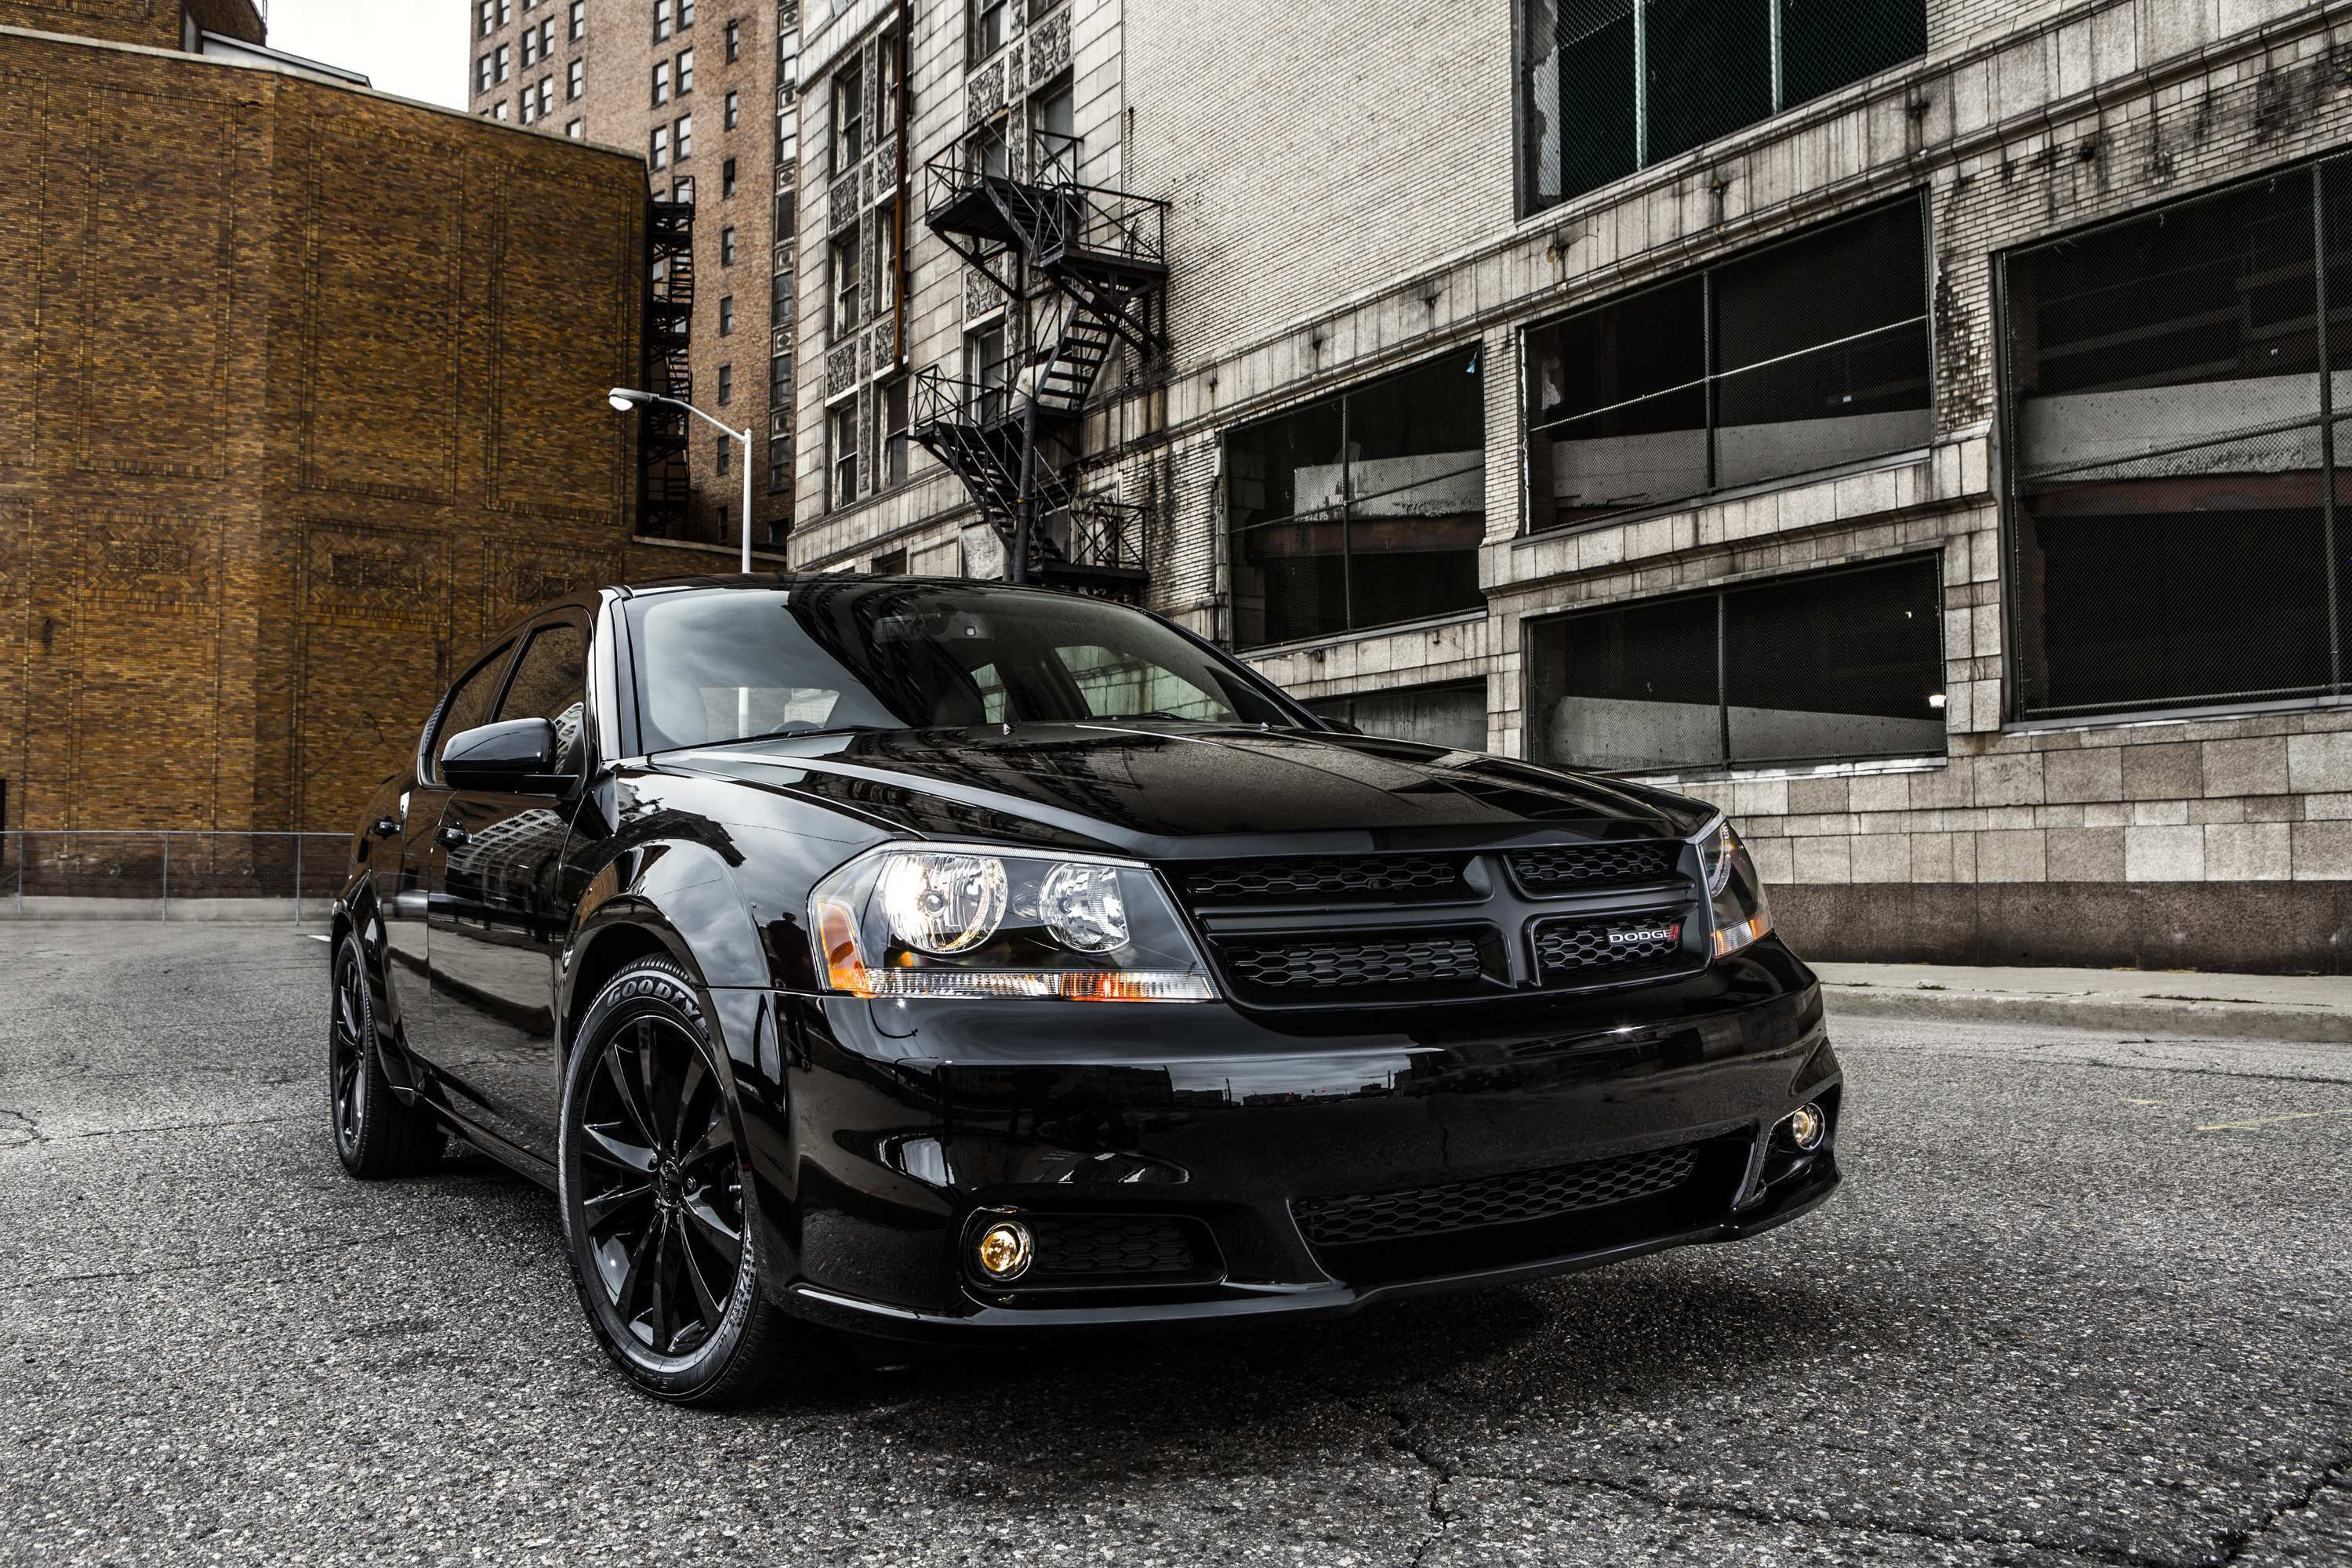 98 Best 2020 Dodge Avenger Srt Reviews